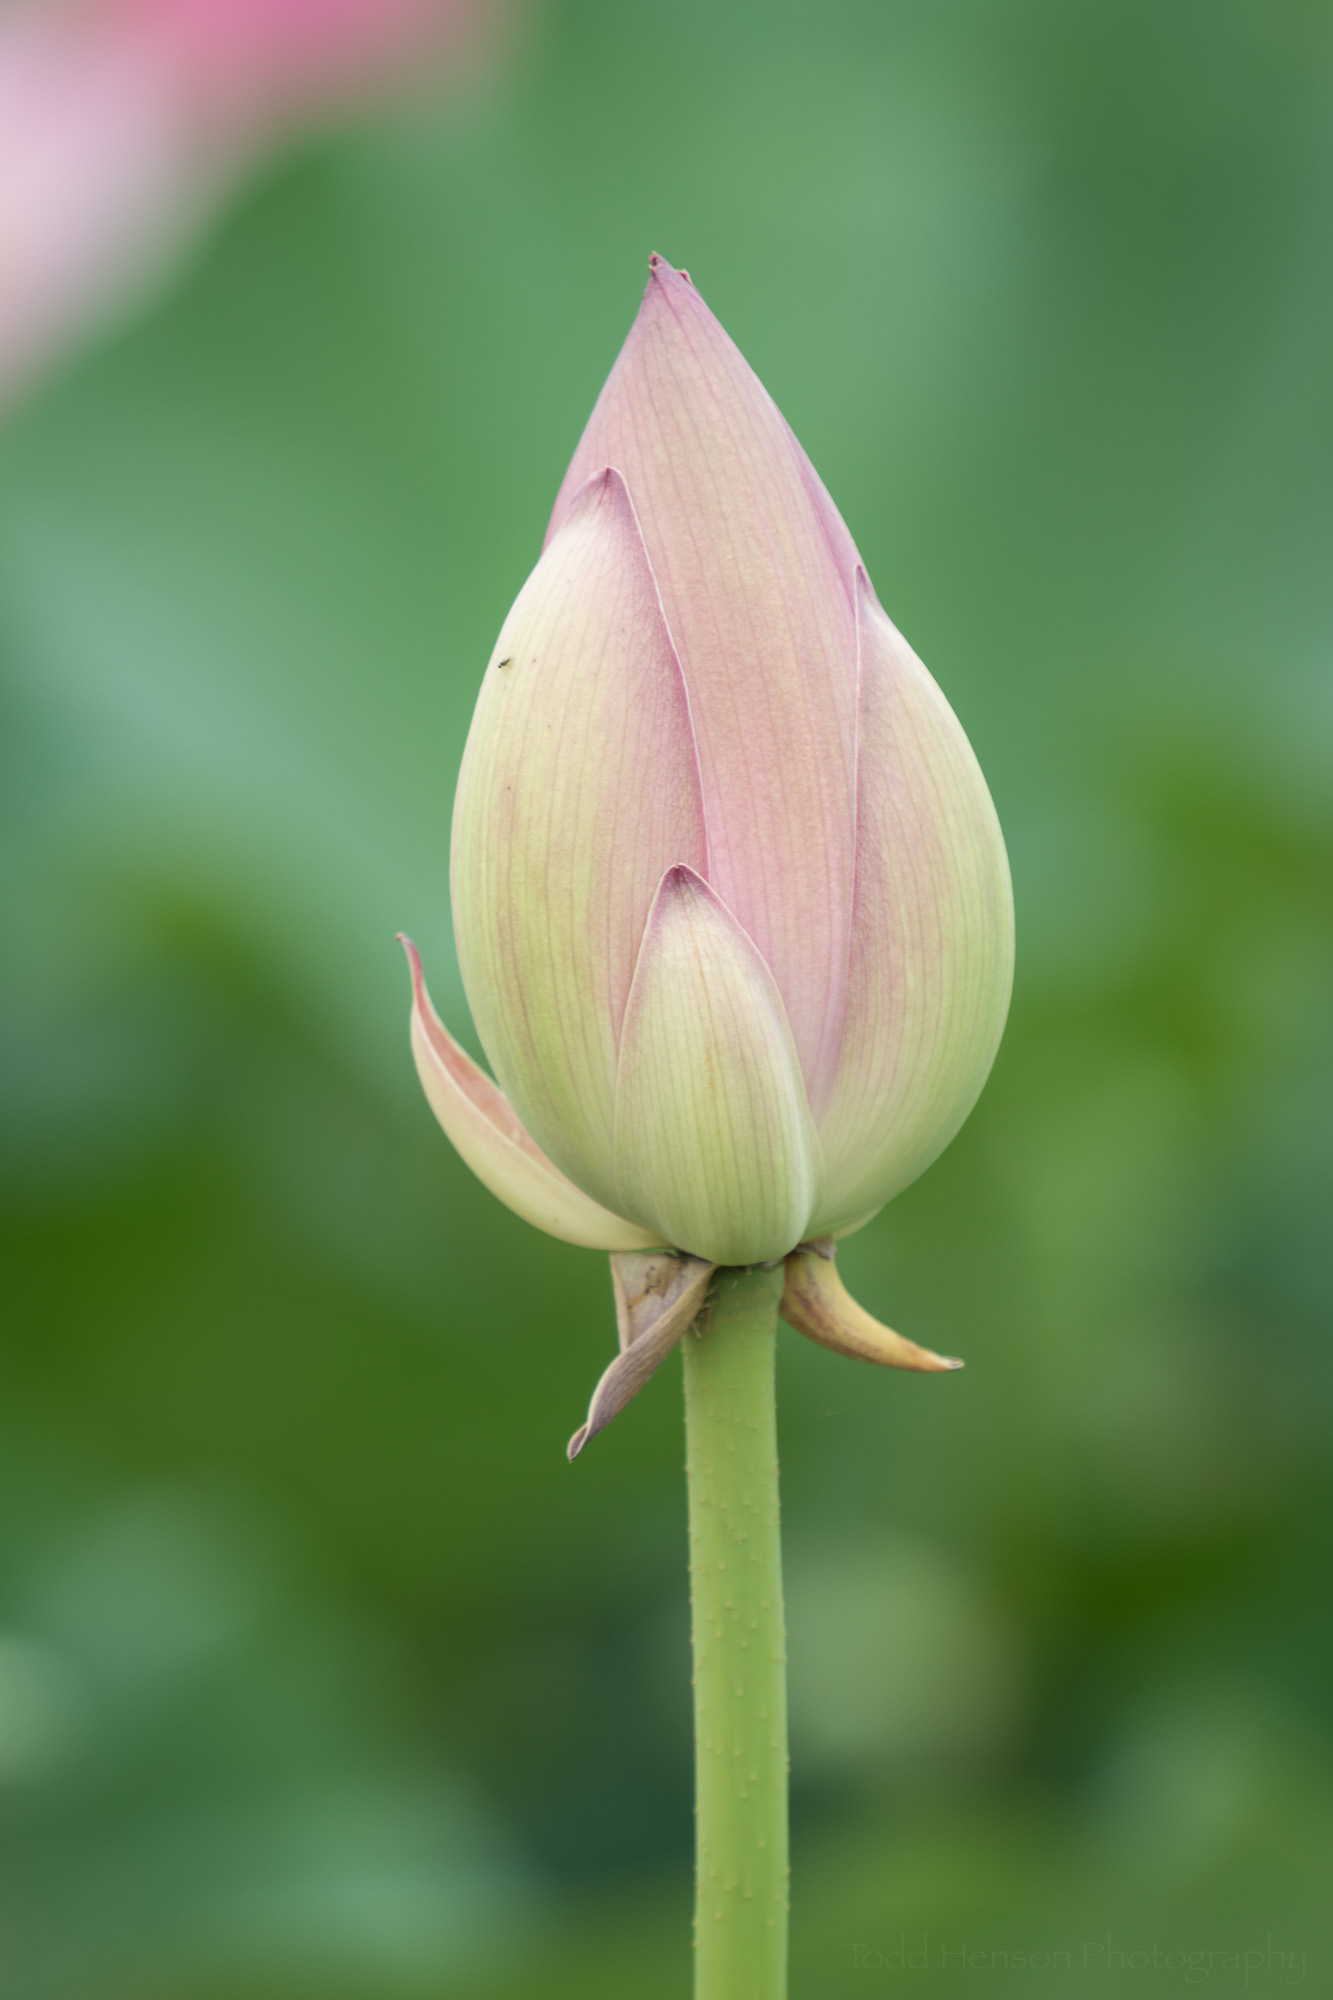 Unopened lotus bud at Kenilworth Aquatic Gardens